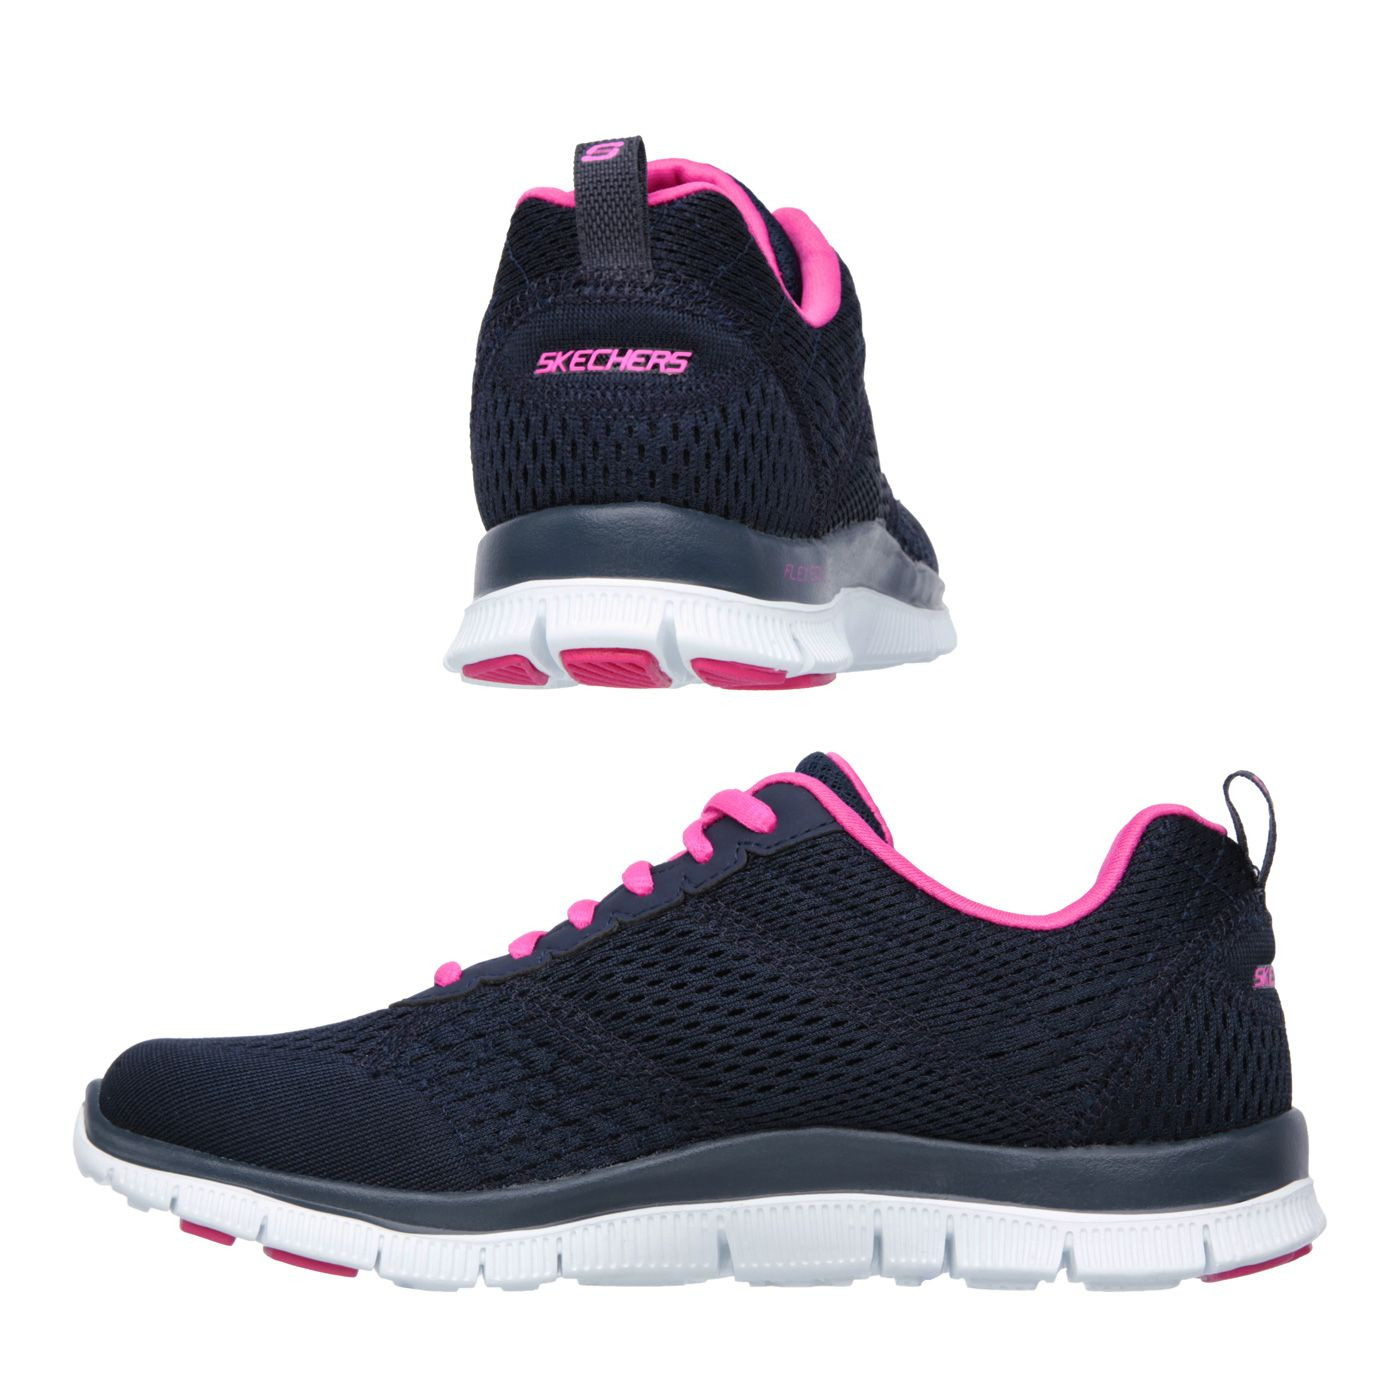 skechers flex appeal obvious choice ladies training shoes. Black Bedroom Furniture Sets. Home Design Ideas